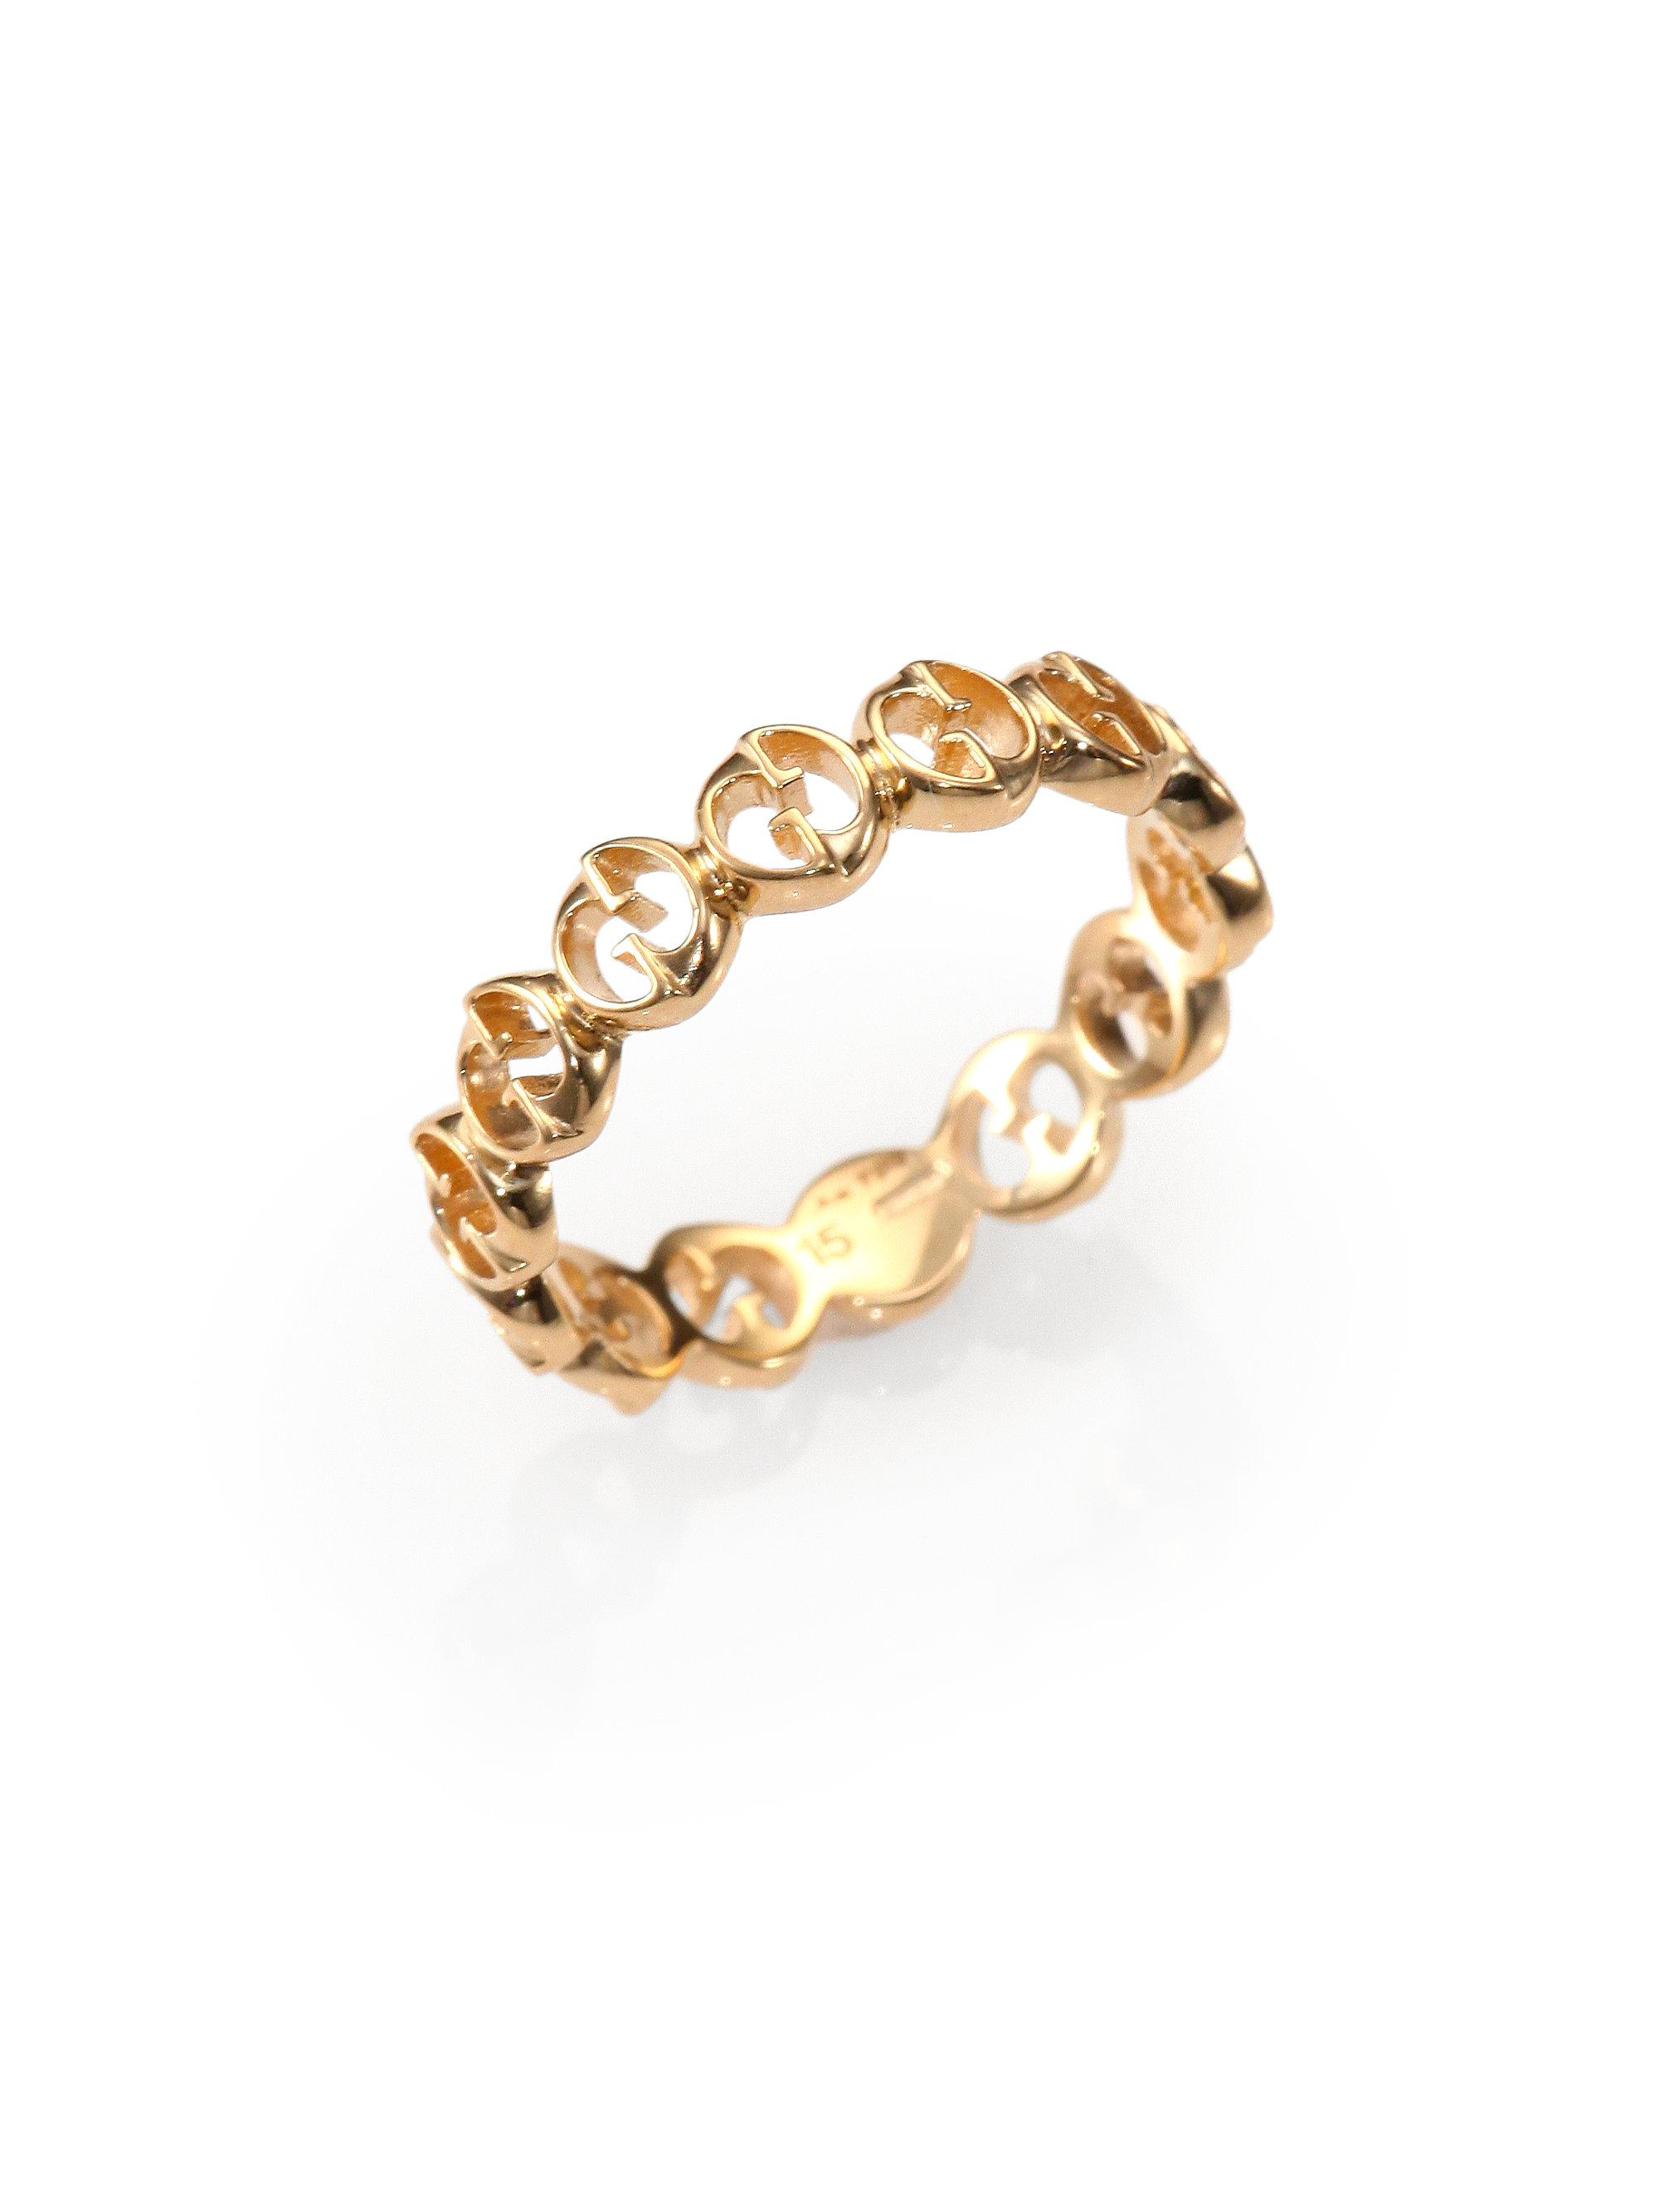 Lyst  Gucci 1973 18k Rose Gold Band Ring in Metallic